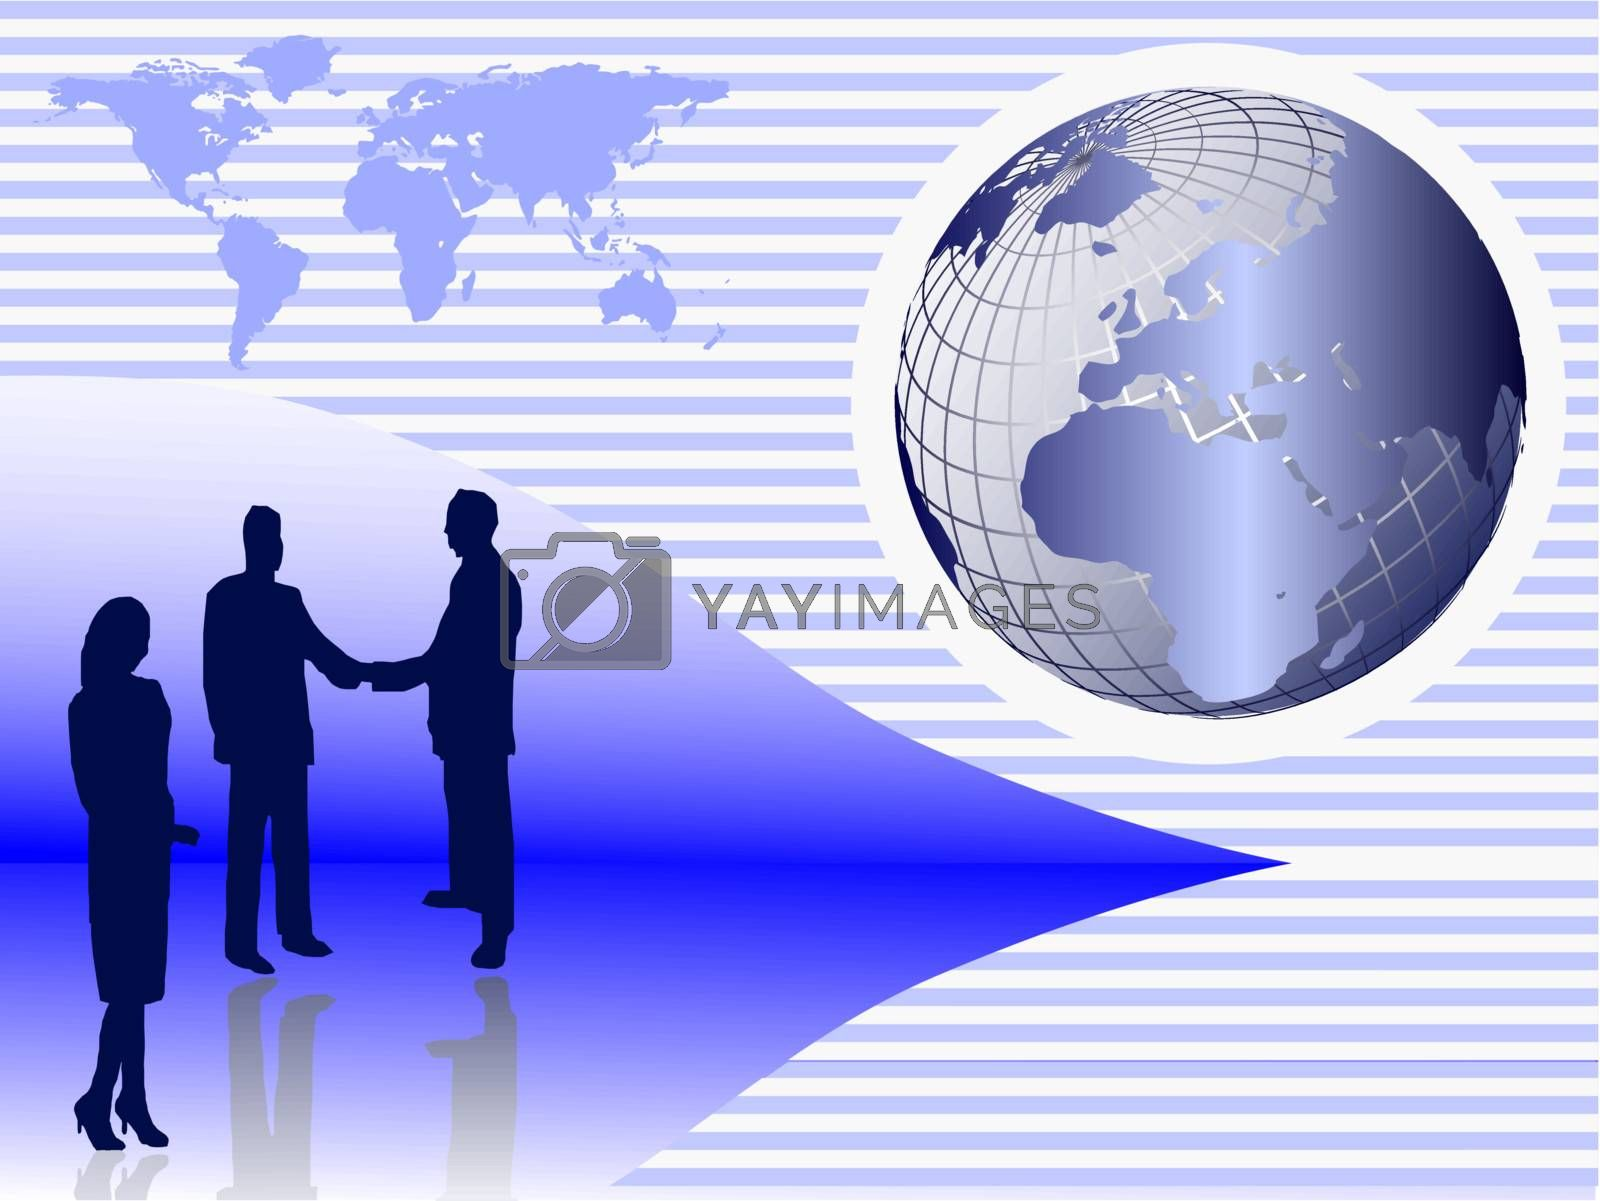 A group of business people in silhouette shaking hands in front of a globe of the earth